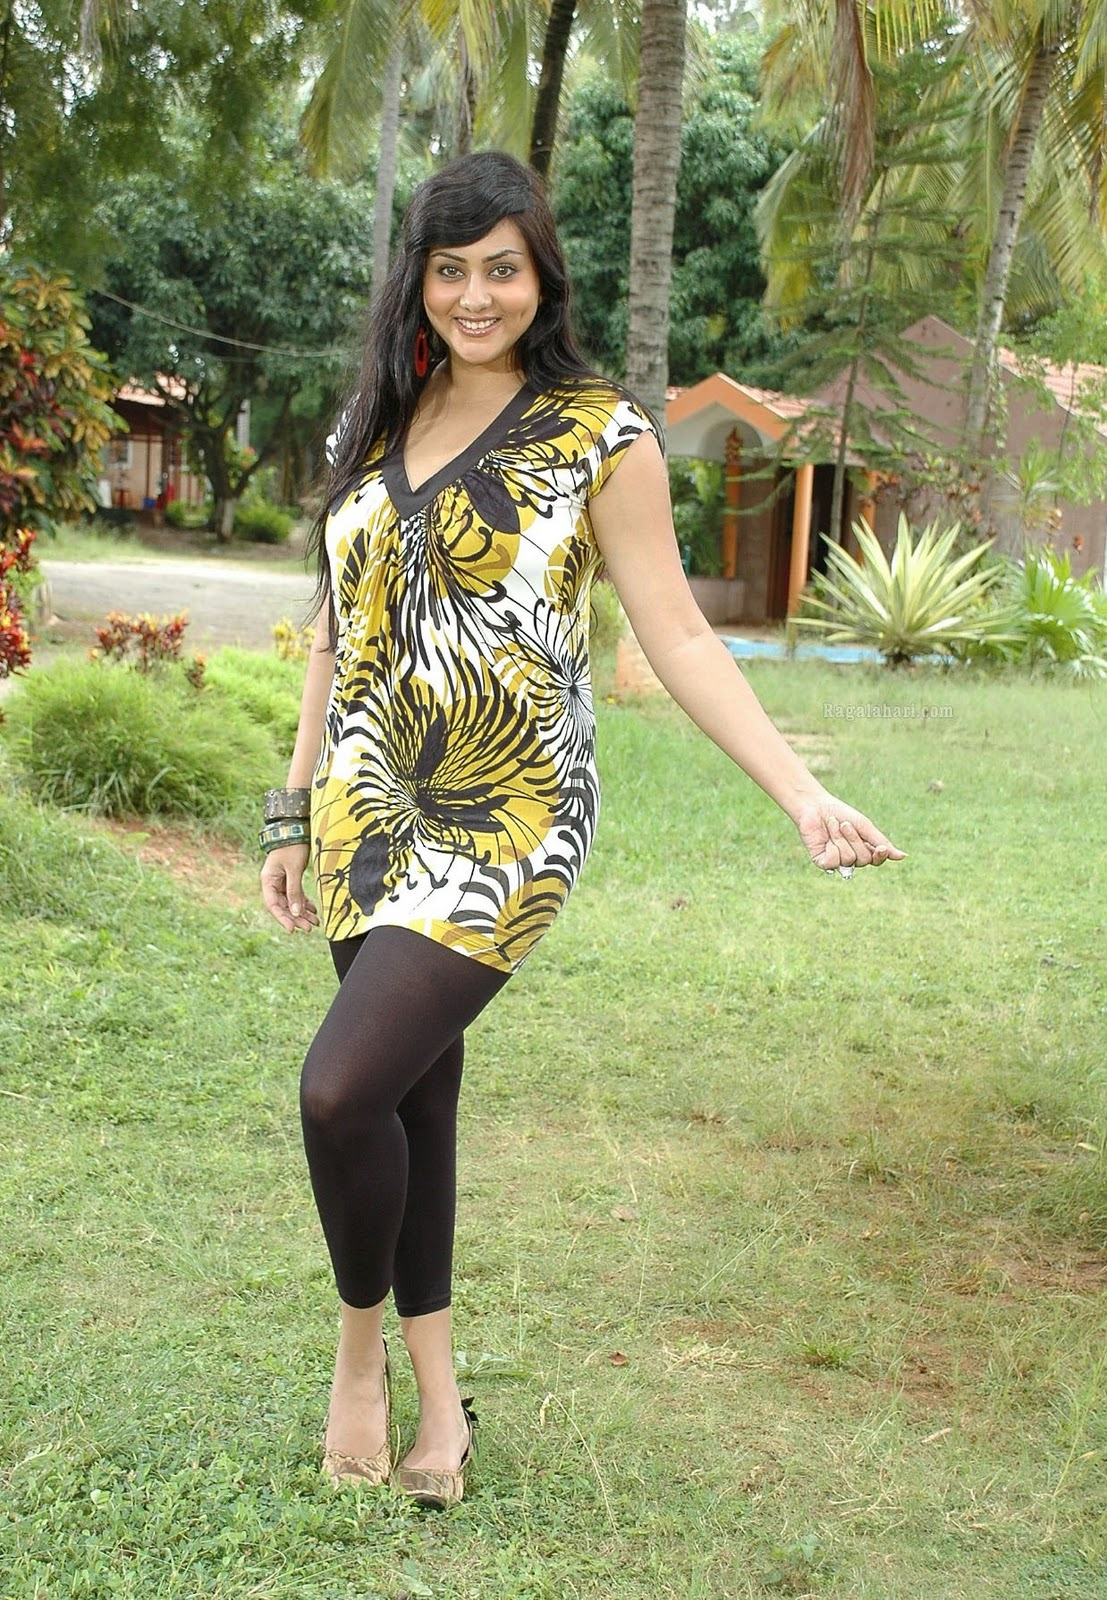 http://4.bp.blogspot.com/-19cLB-4YWc0/Tsdwej_VVQI/AAAAAAAAJMM/K69mZke6bHM/s1600/Namitha+new+movie+hot+stills.jpg